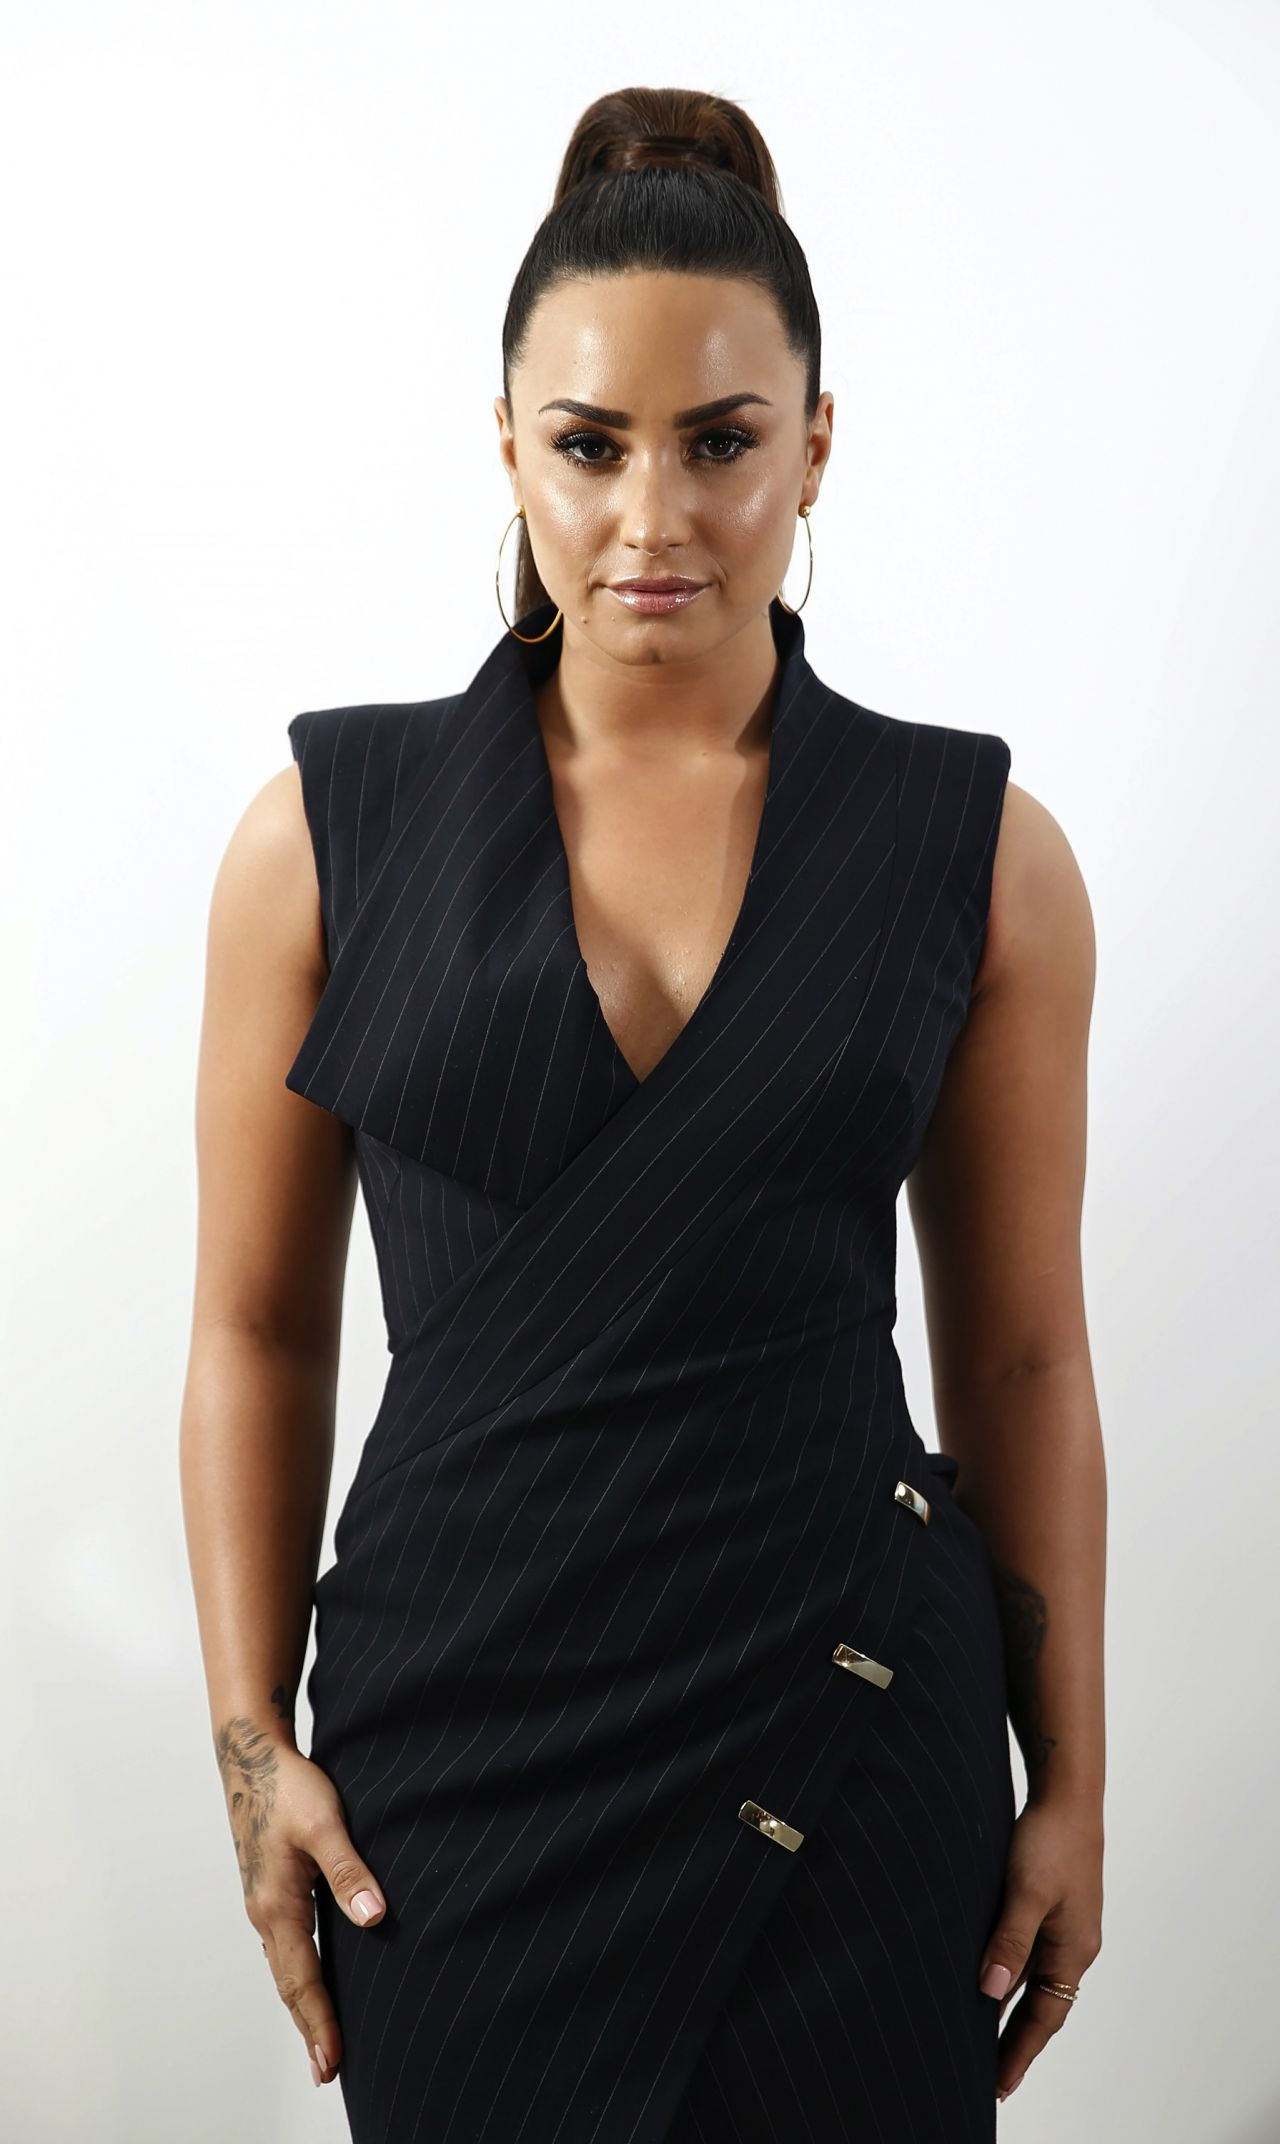 demi lovato - photo #48